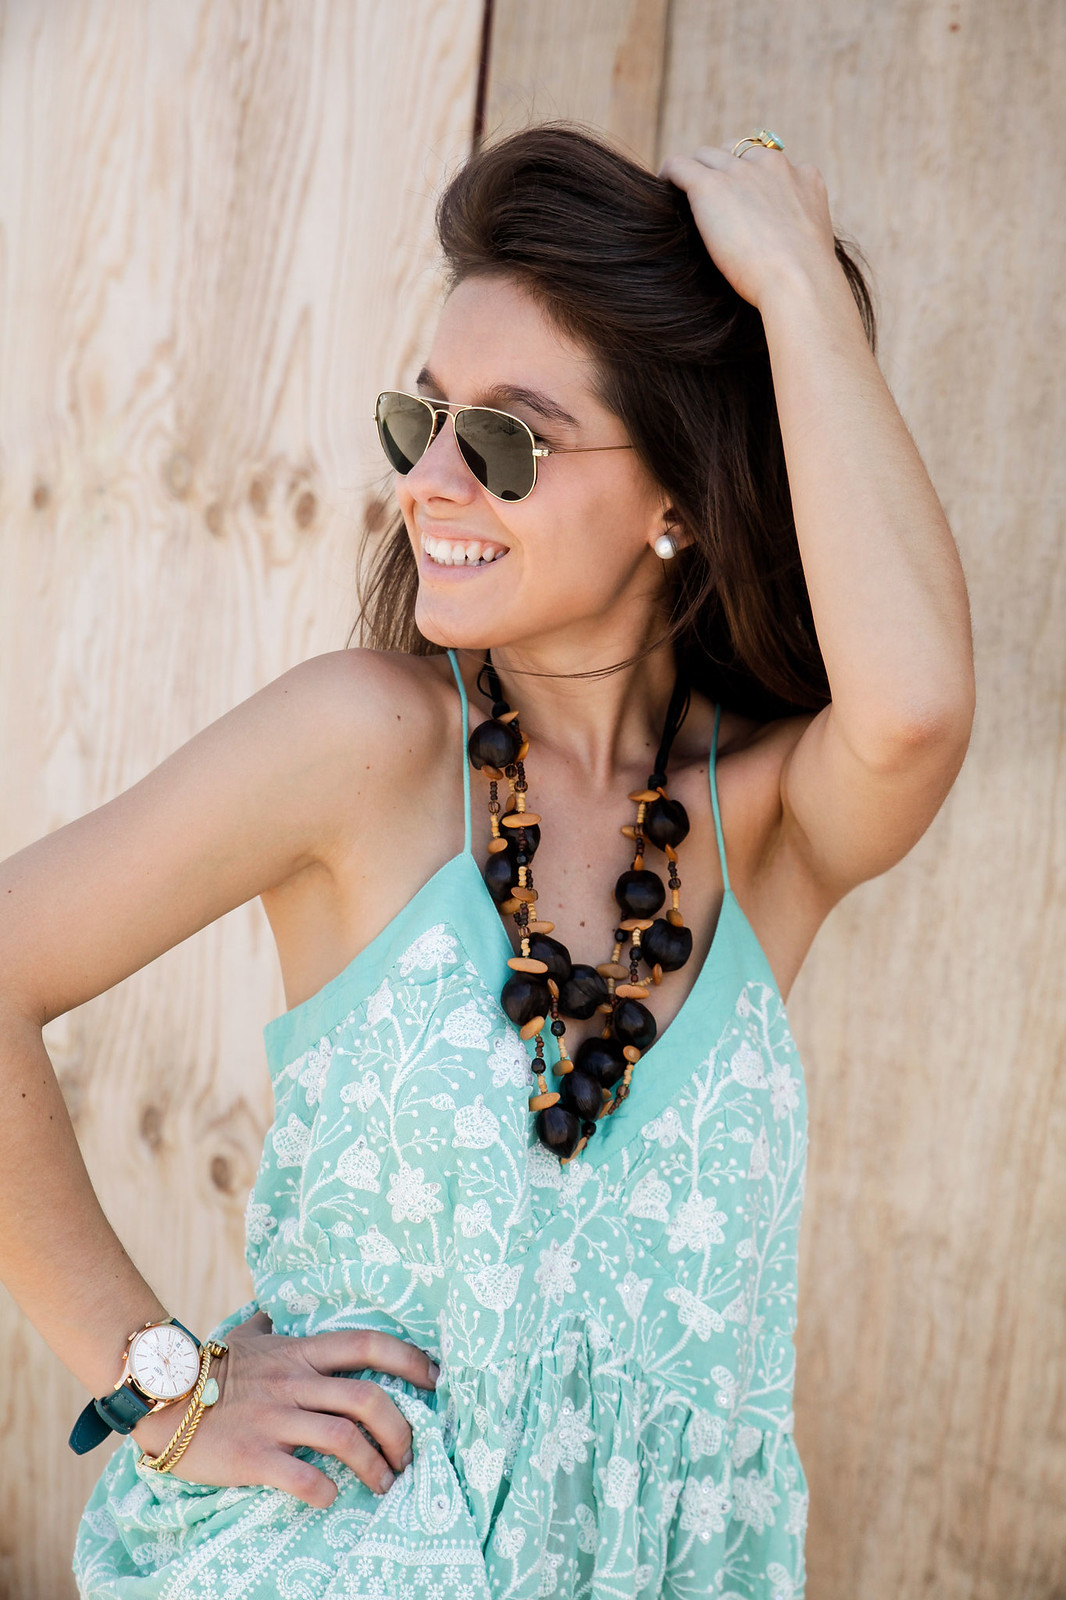 013_turquoise__dress_summer_outfit_miss_june_castañer_cuñas_aguamarina_theguestgirl_influencer_barcelona_laura_santolaria